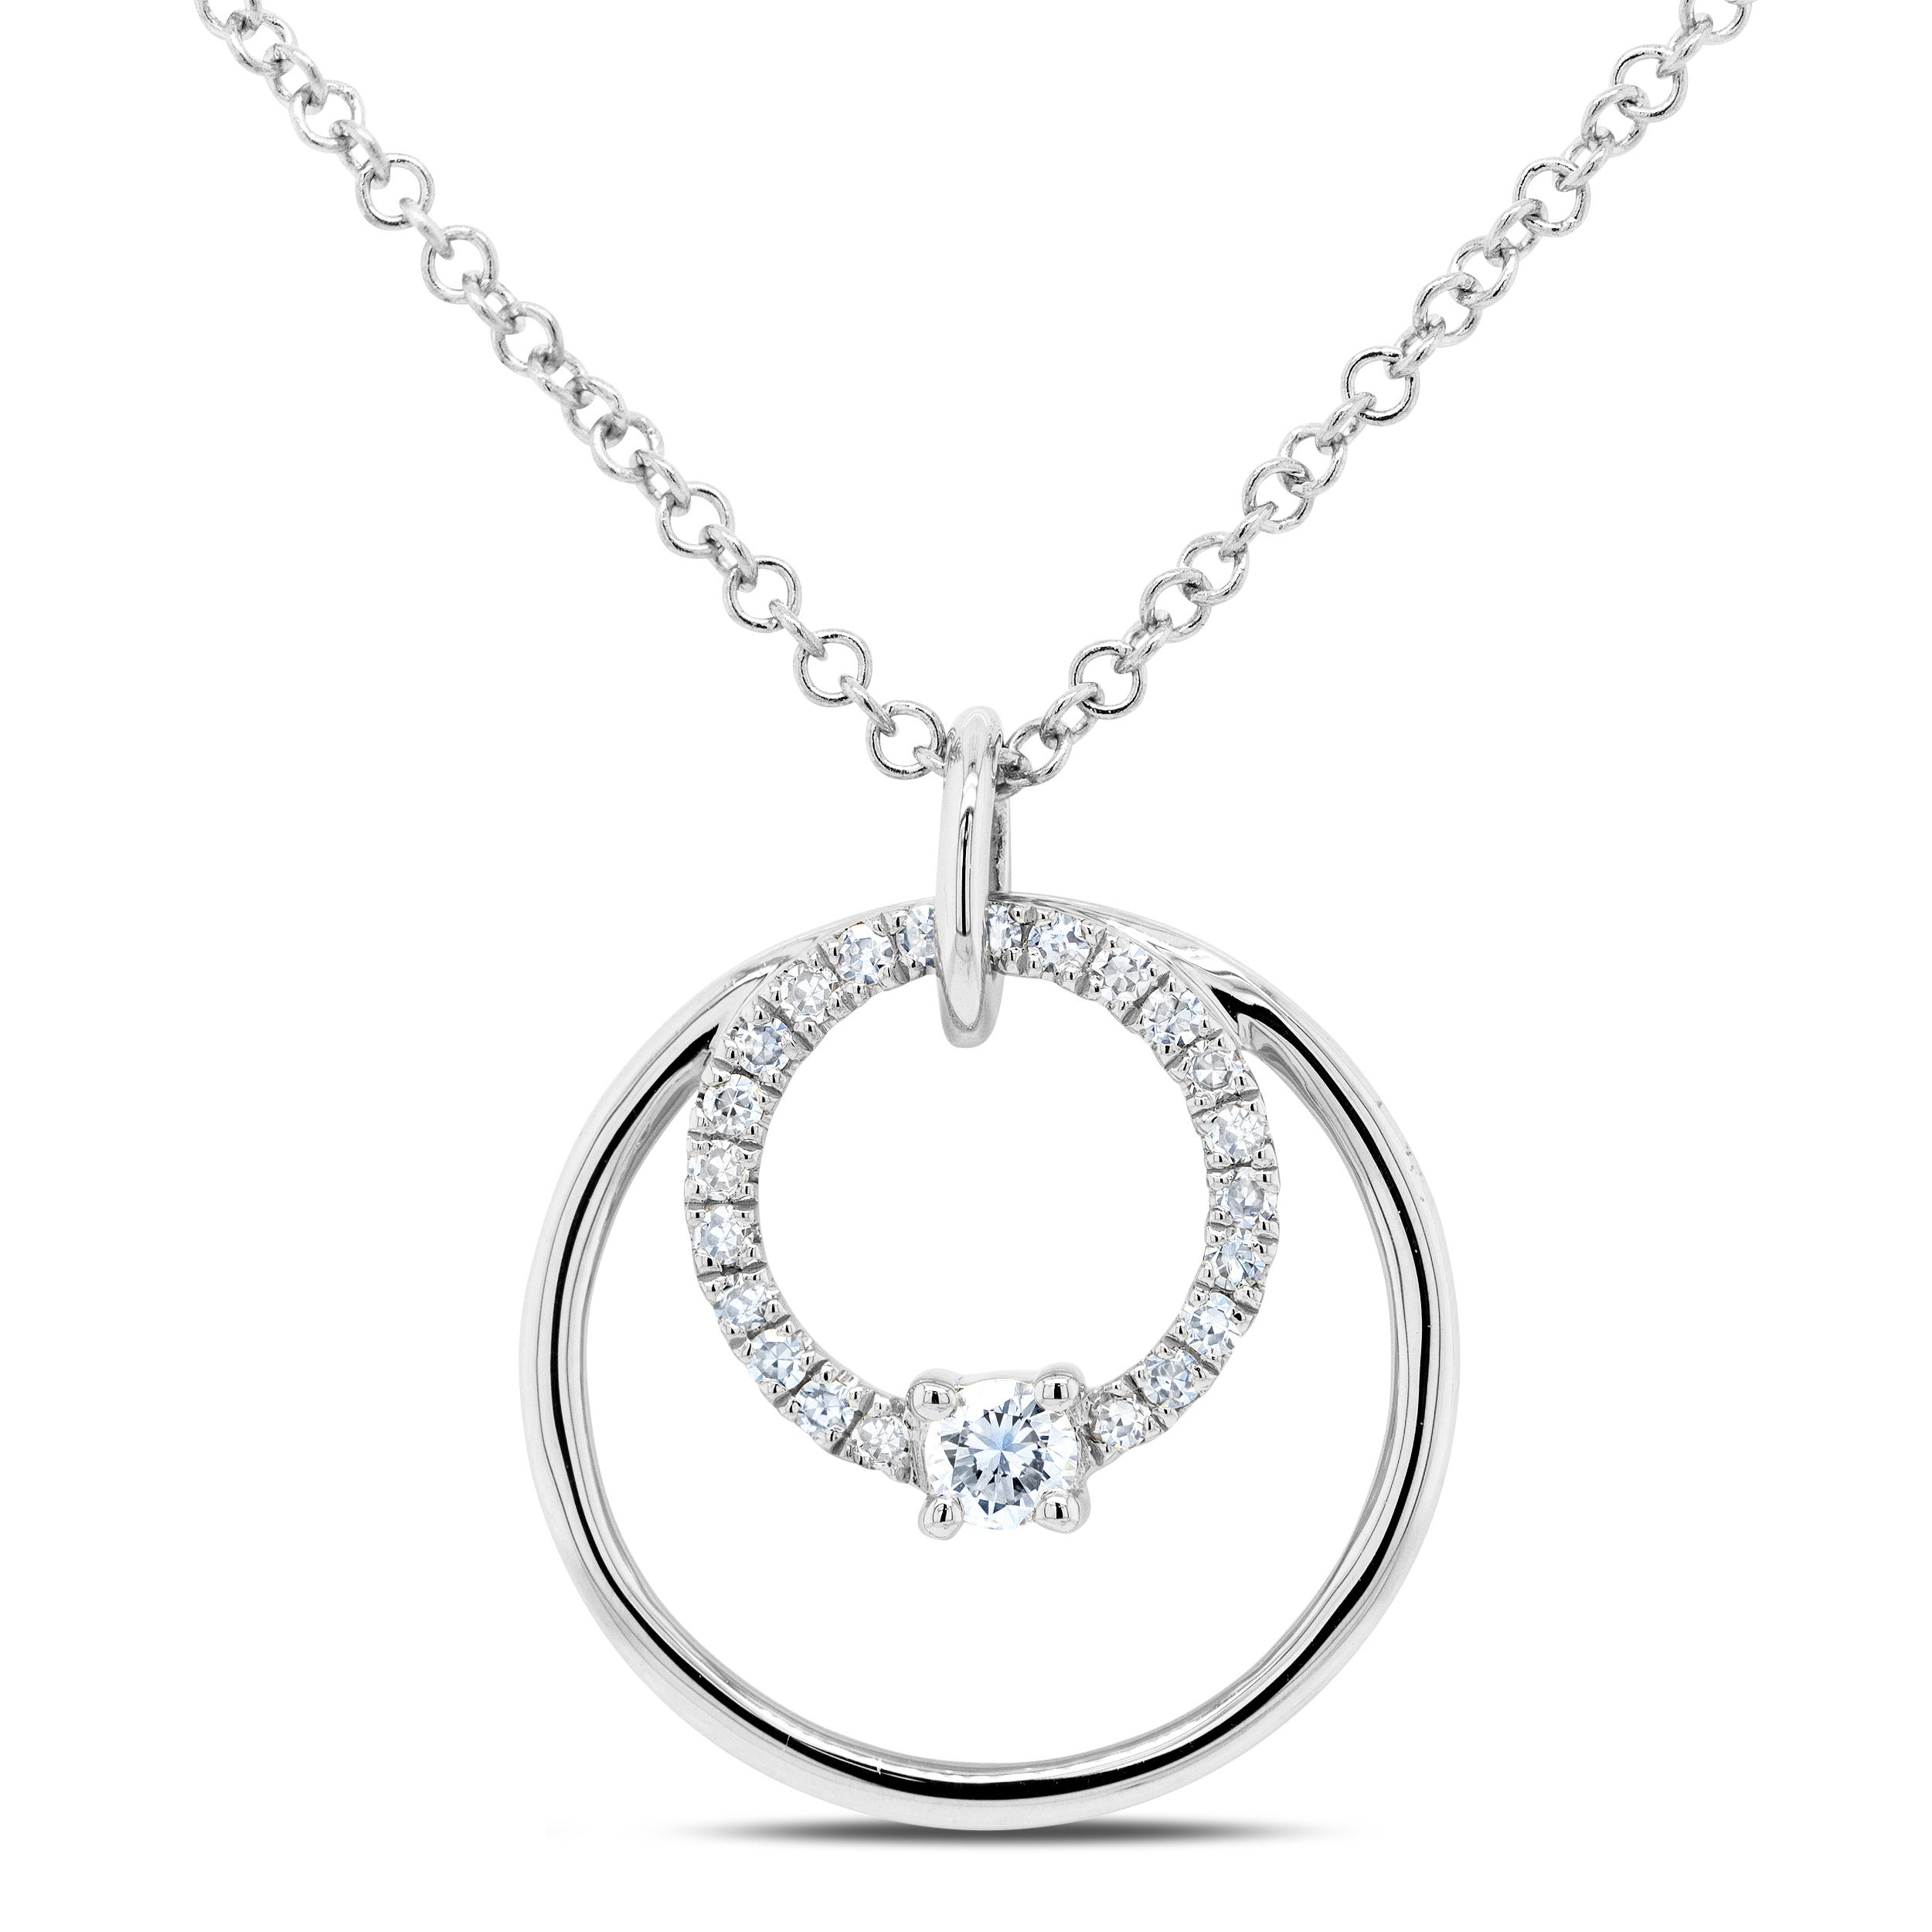 Shy Creation Diamond Circle Necklace in 14k White Gold SC55009039